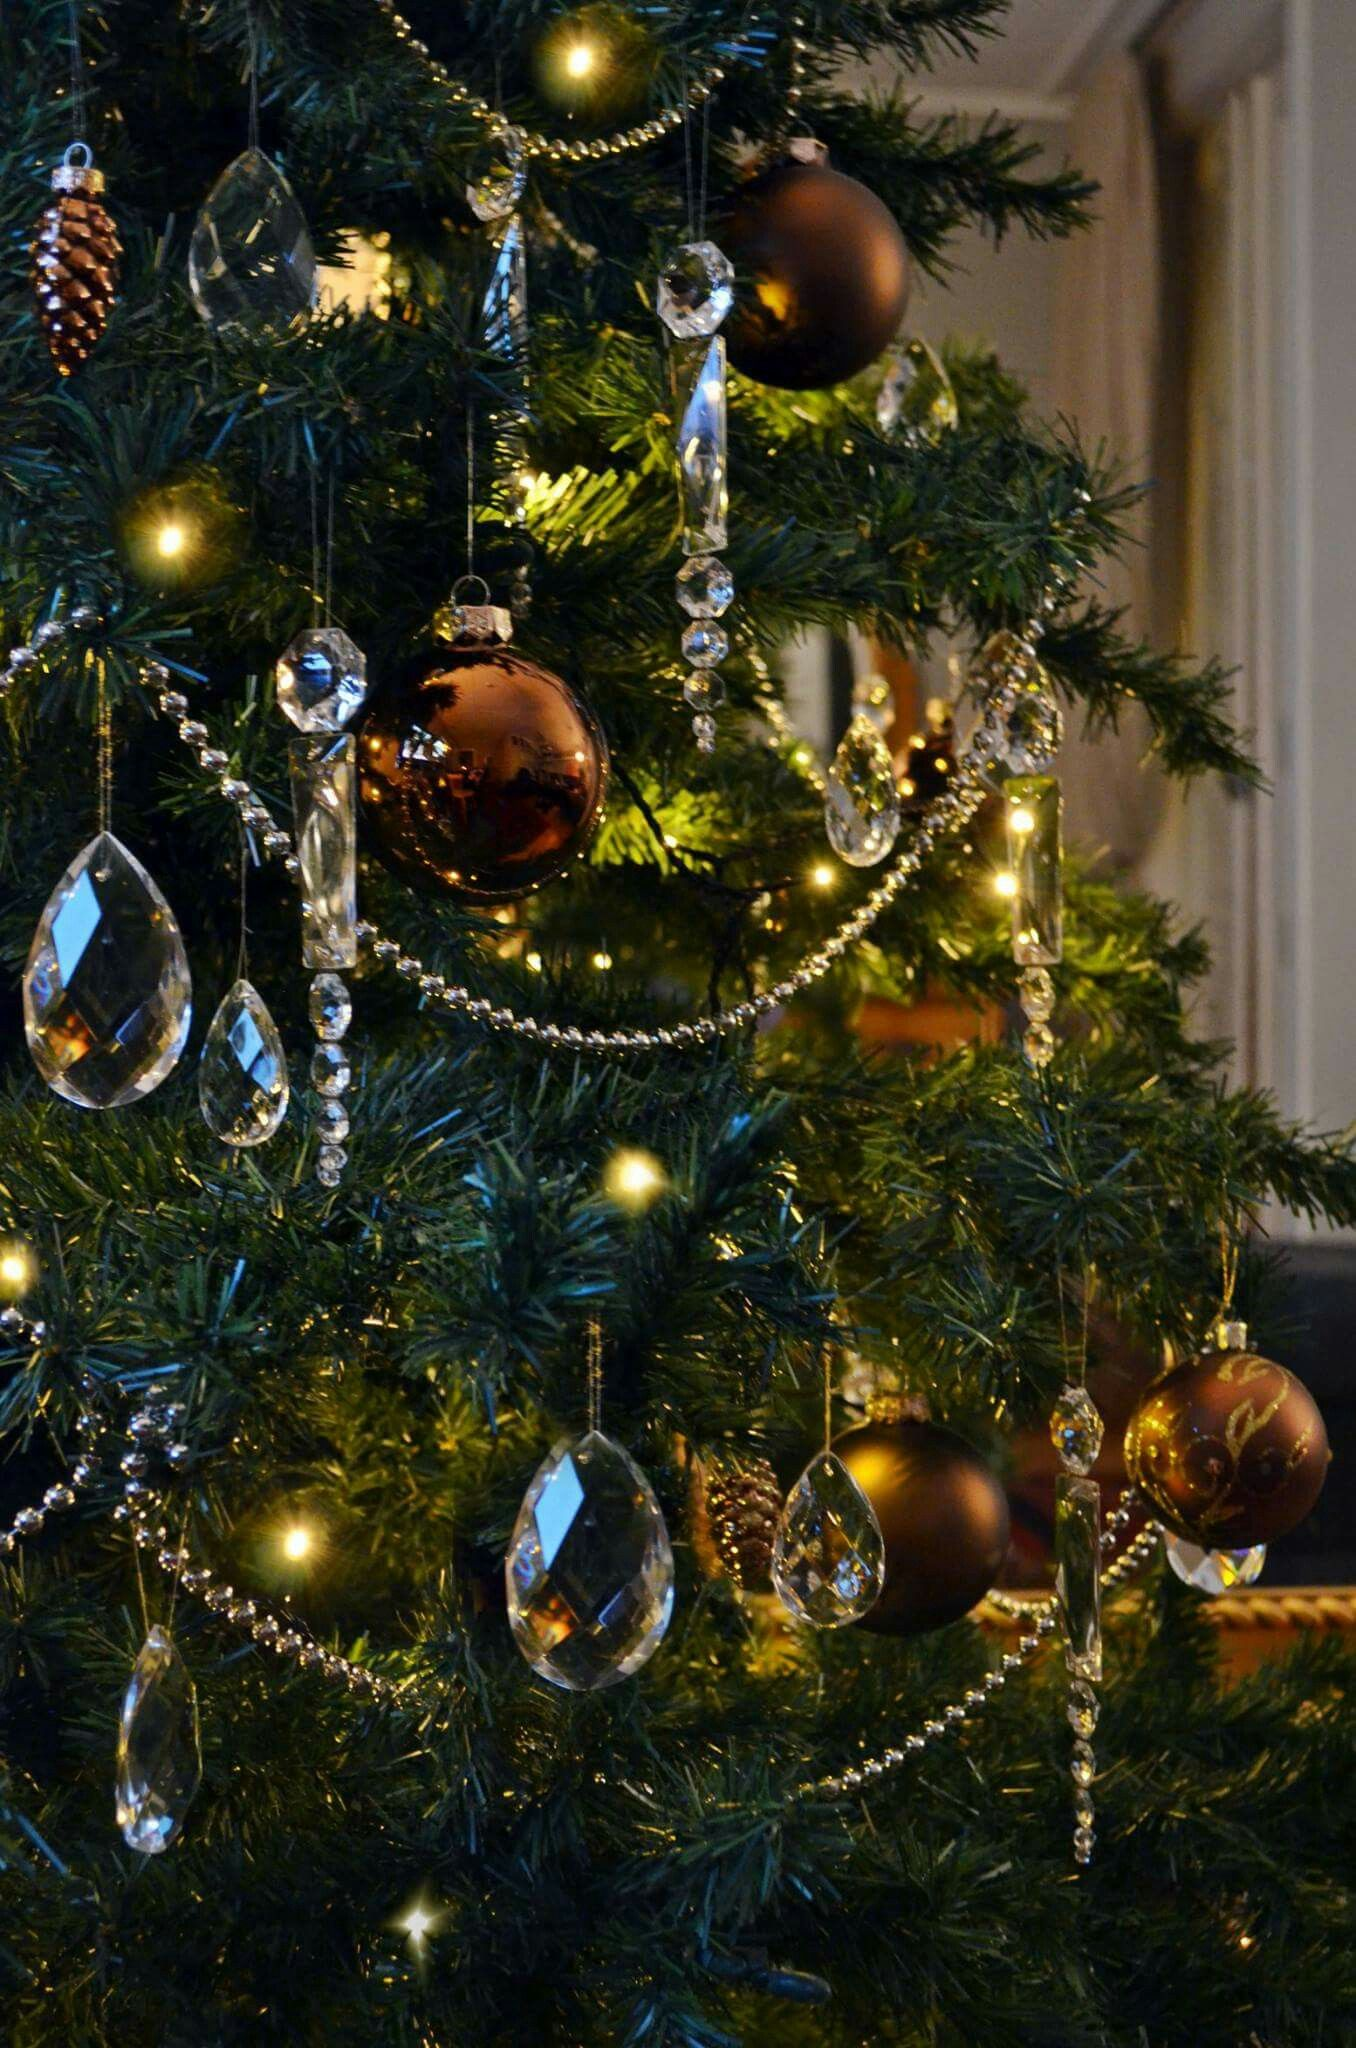 Christmas Tree Decorations With Chrystal, Brown And Bronze Chrystals From